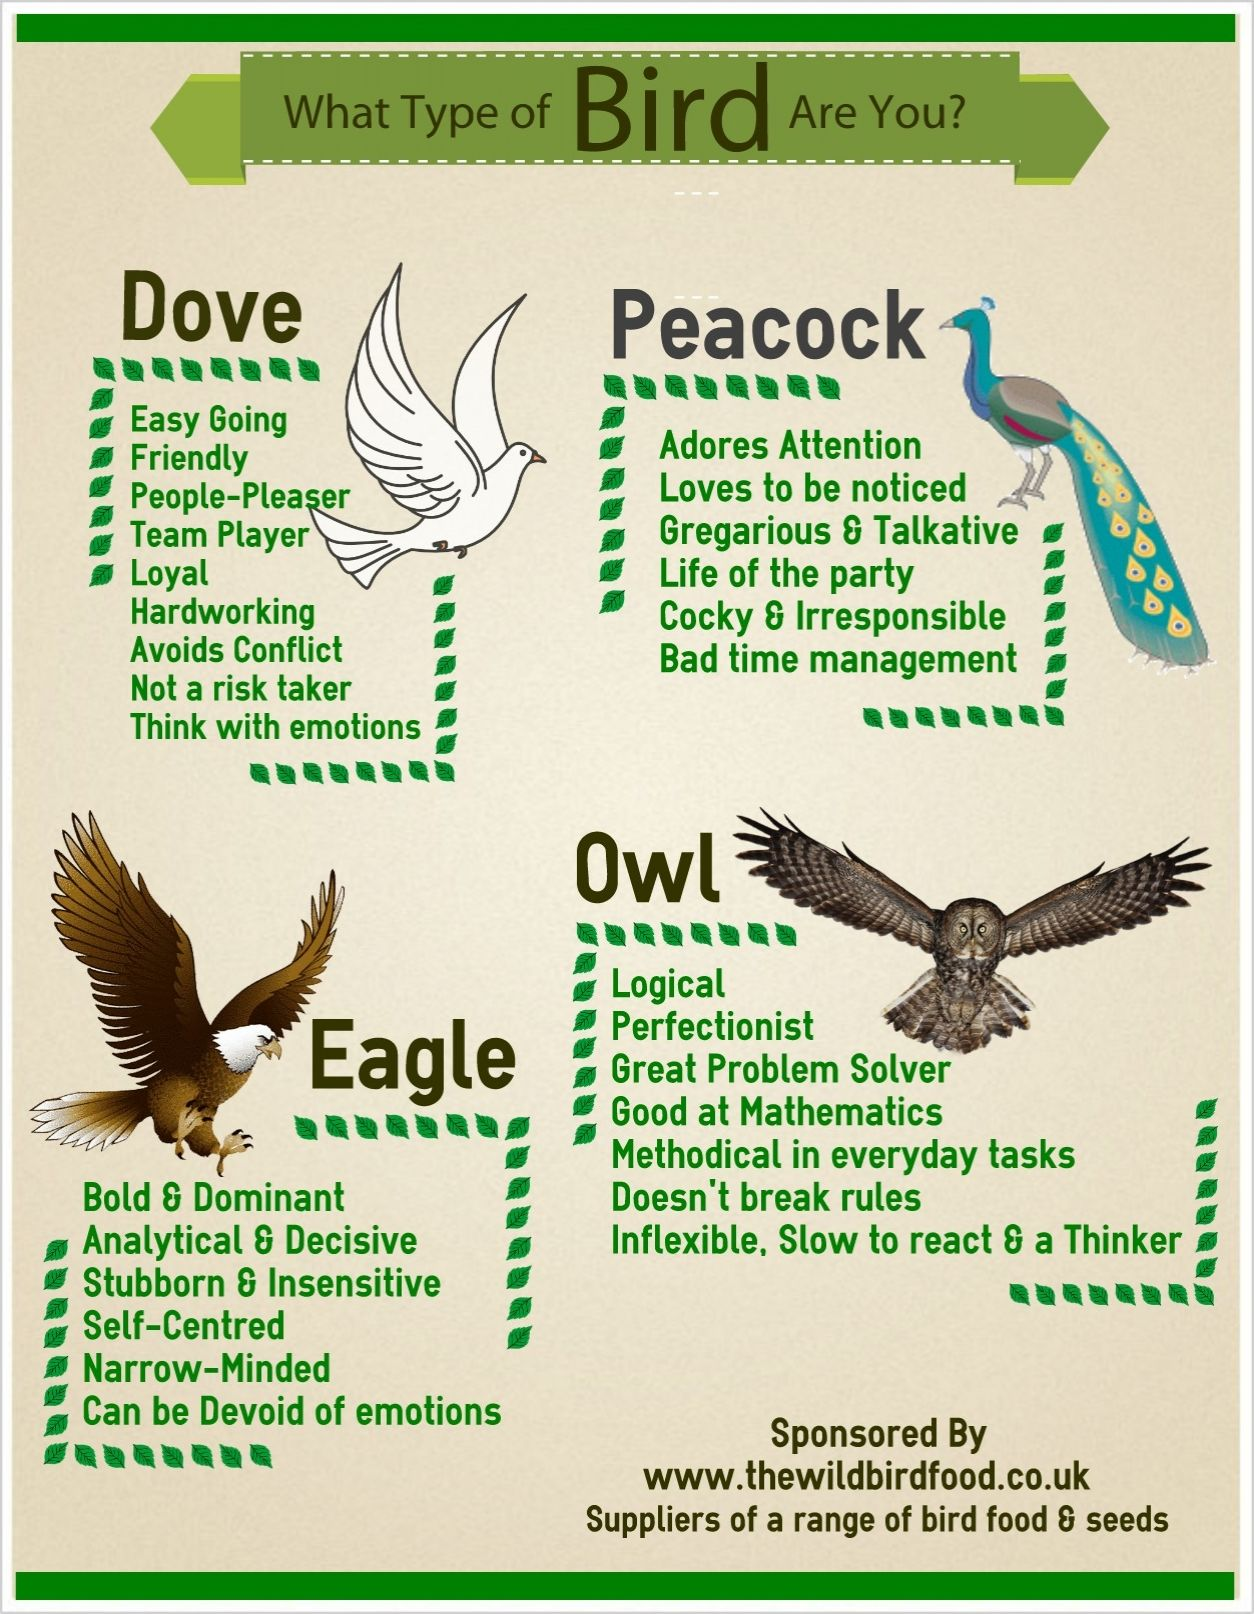 Are You A Easy Going Dove A Attention Seeking Peacock A Dominant Eagle Or A Logical Owl Take